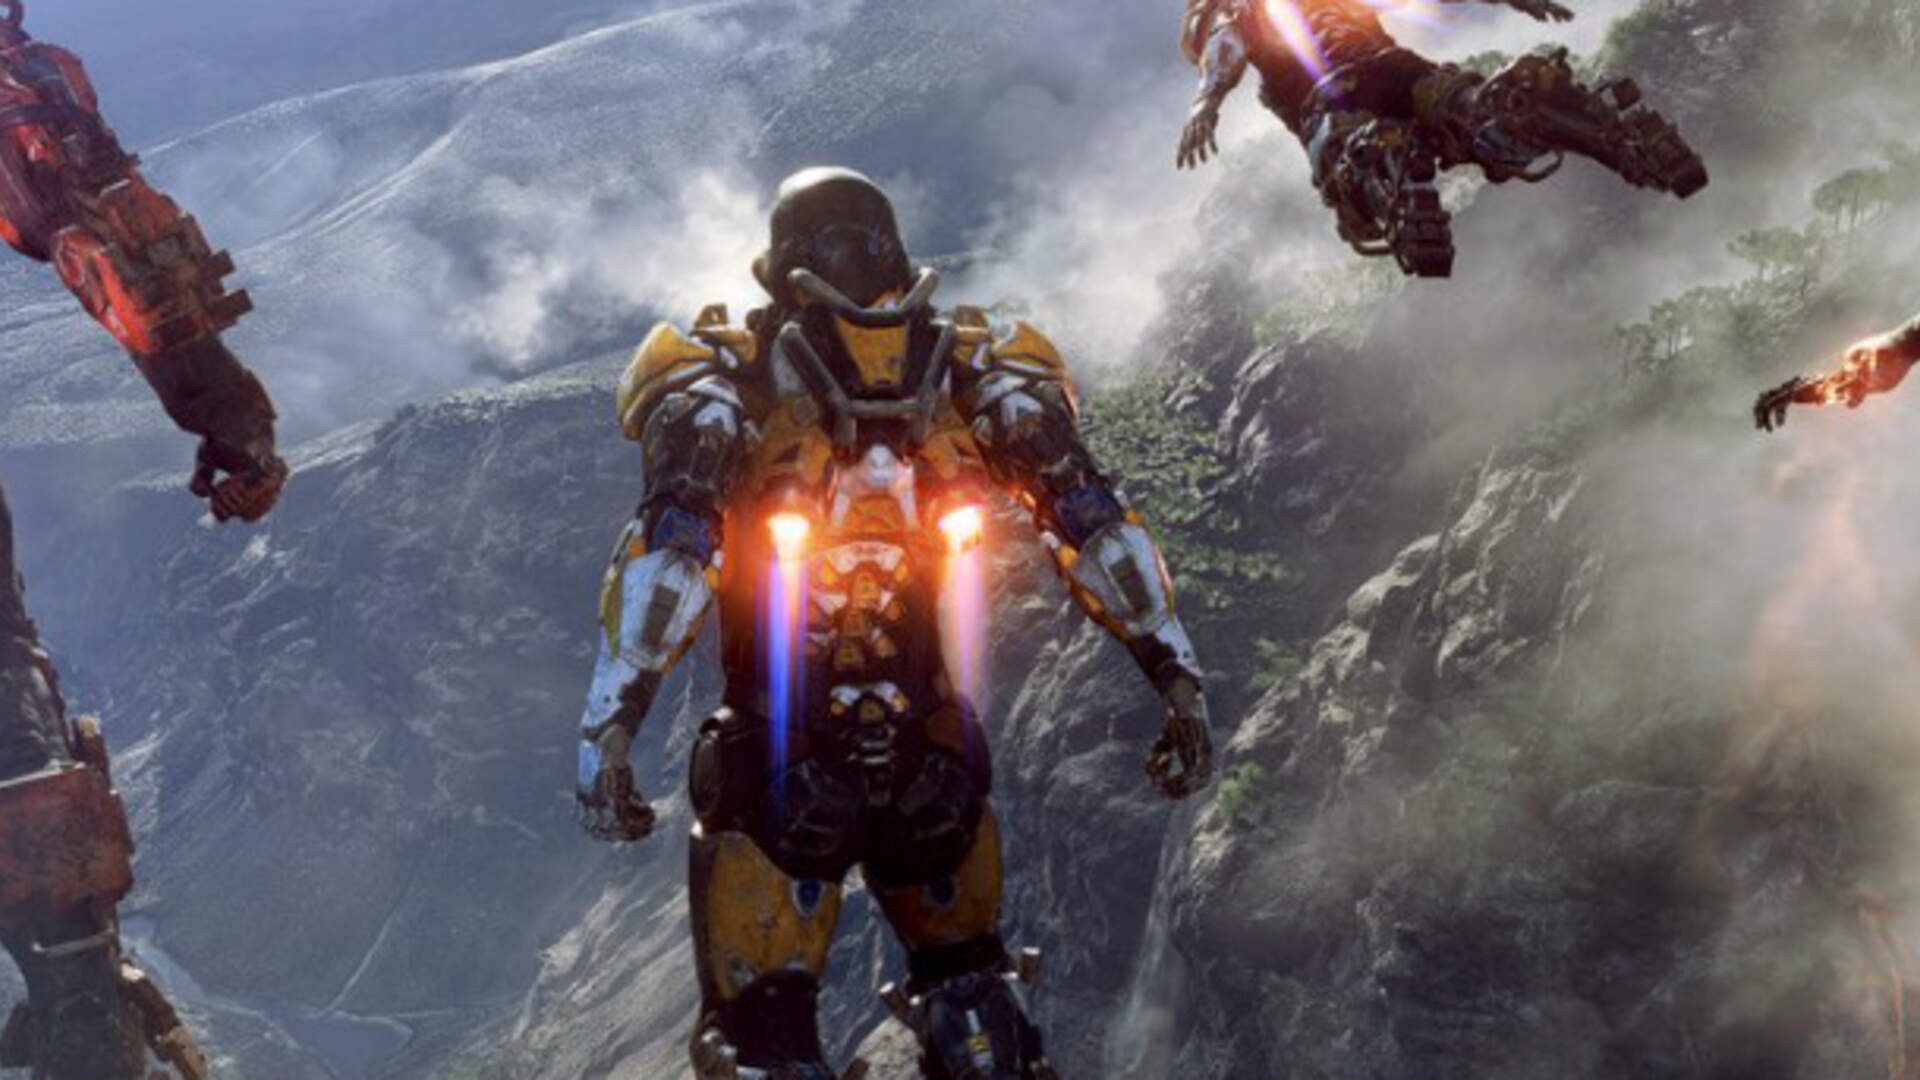 BioWare All-In on Anthem as Game Slips Into 2019